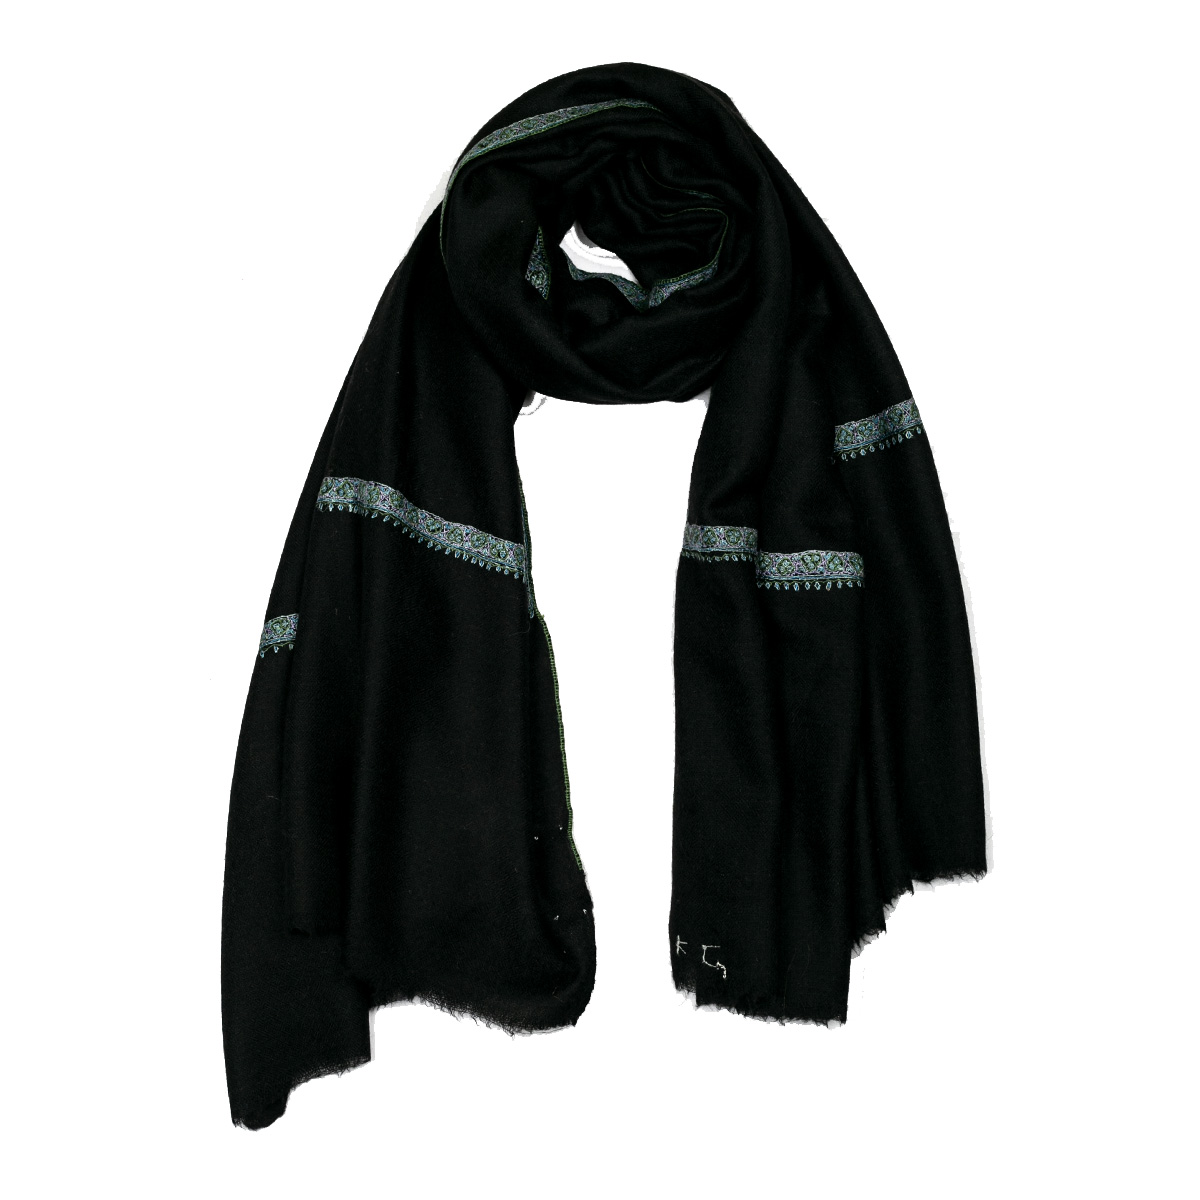 Hand Embroidered Cashmere Pashmina Stole - Black